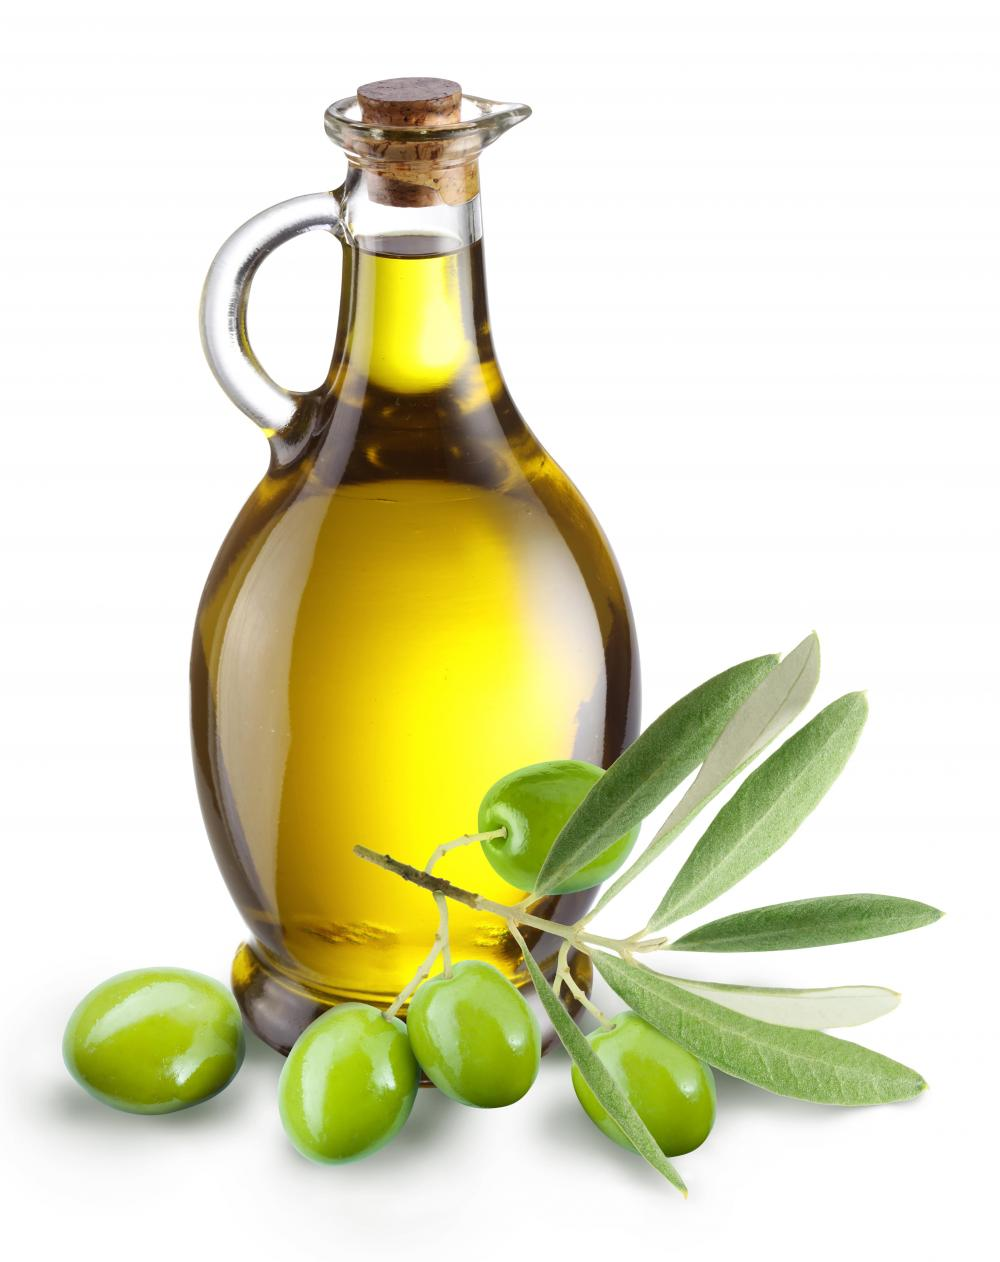 bottle-of-olive-oil-1.jpg